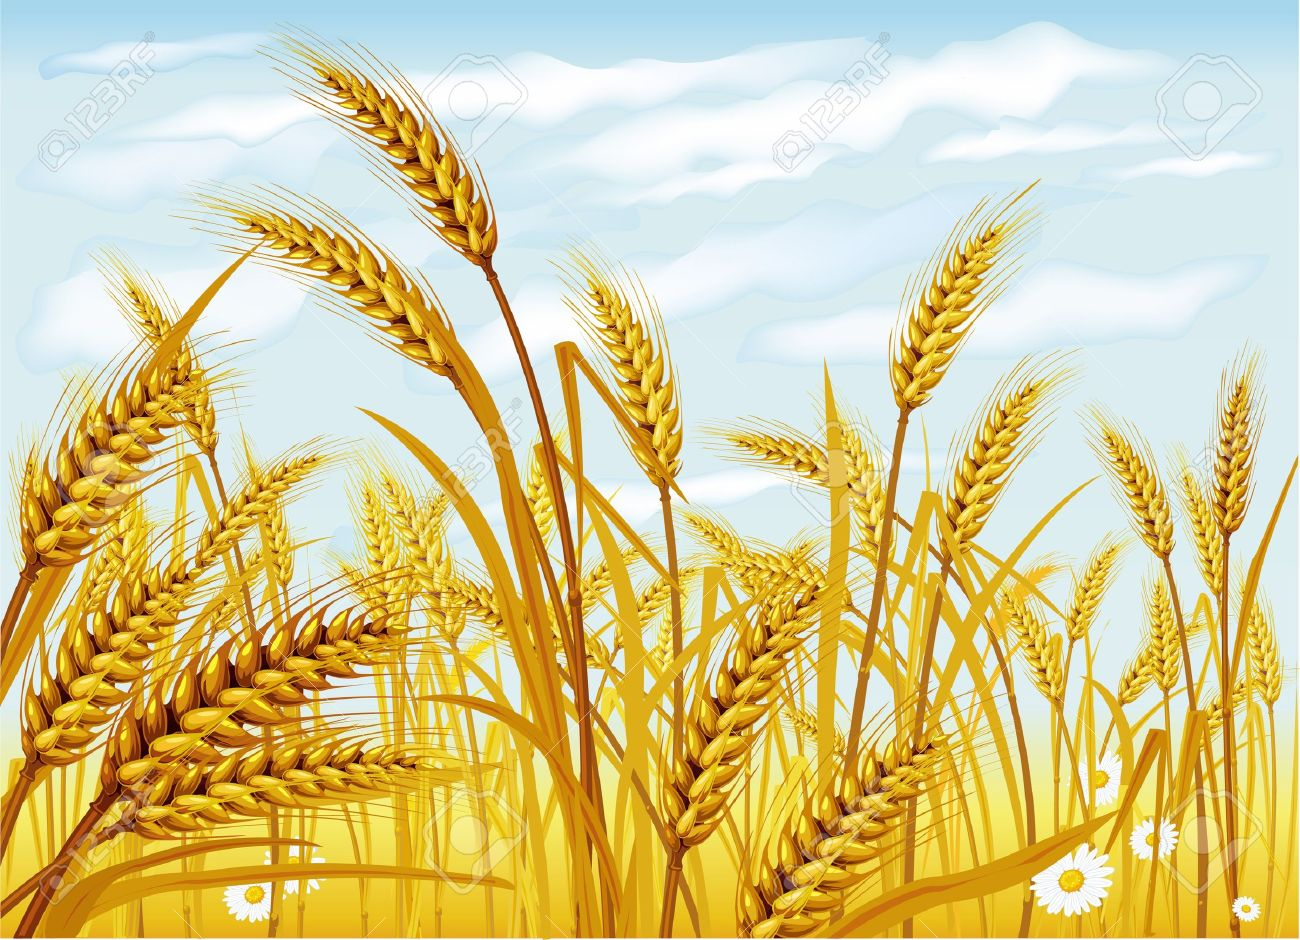 Wheat field clipart 6 » Clipart Station.